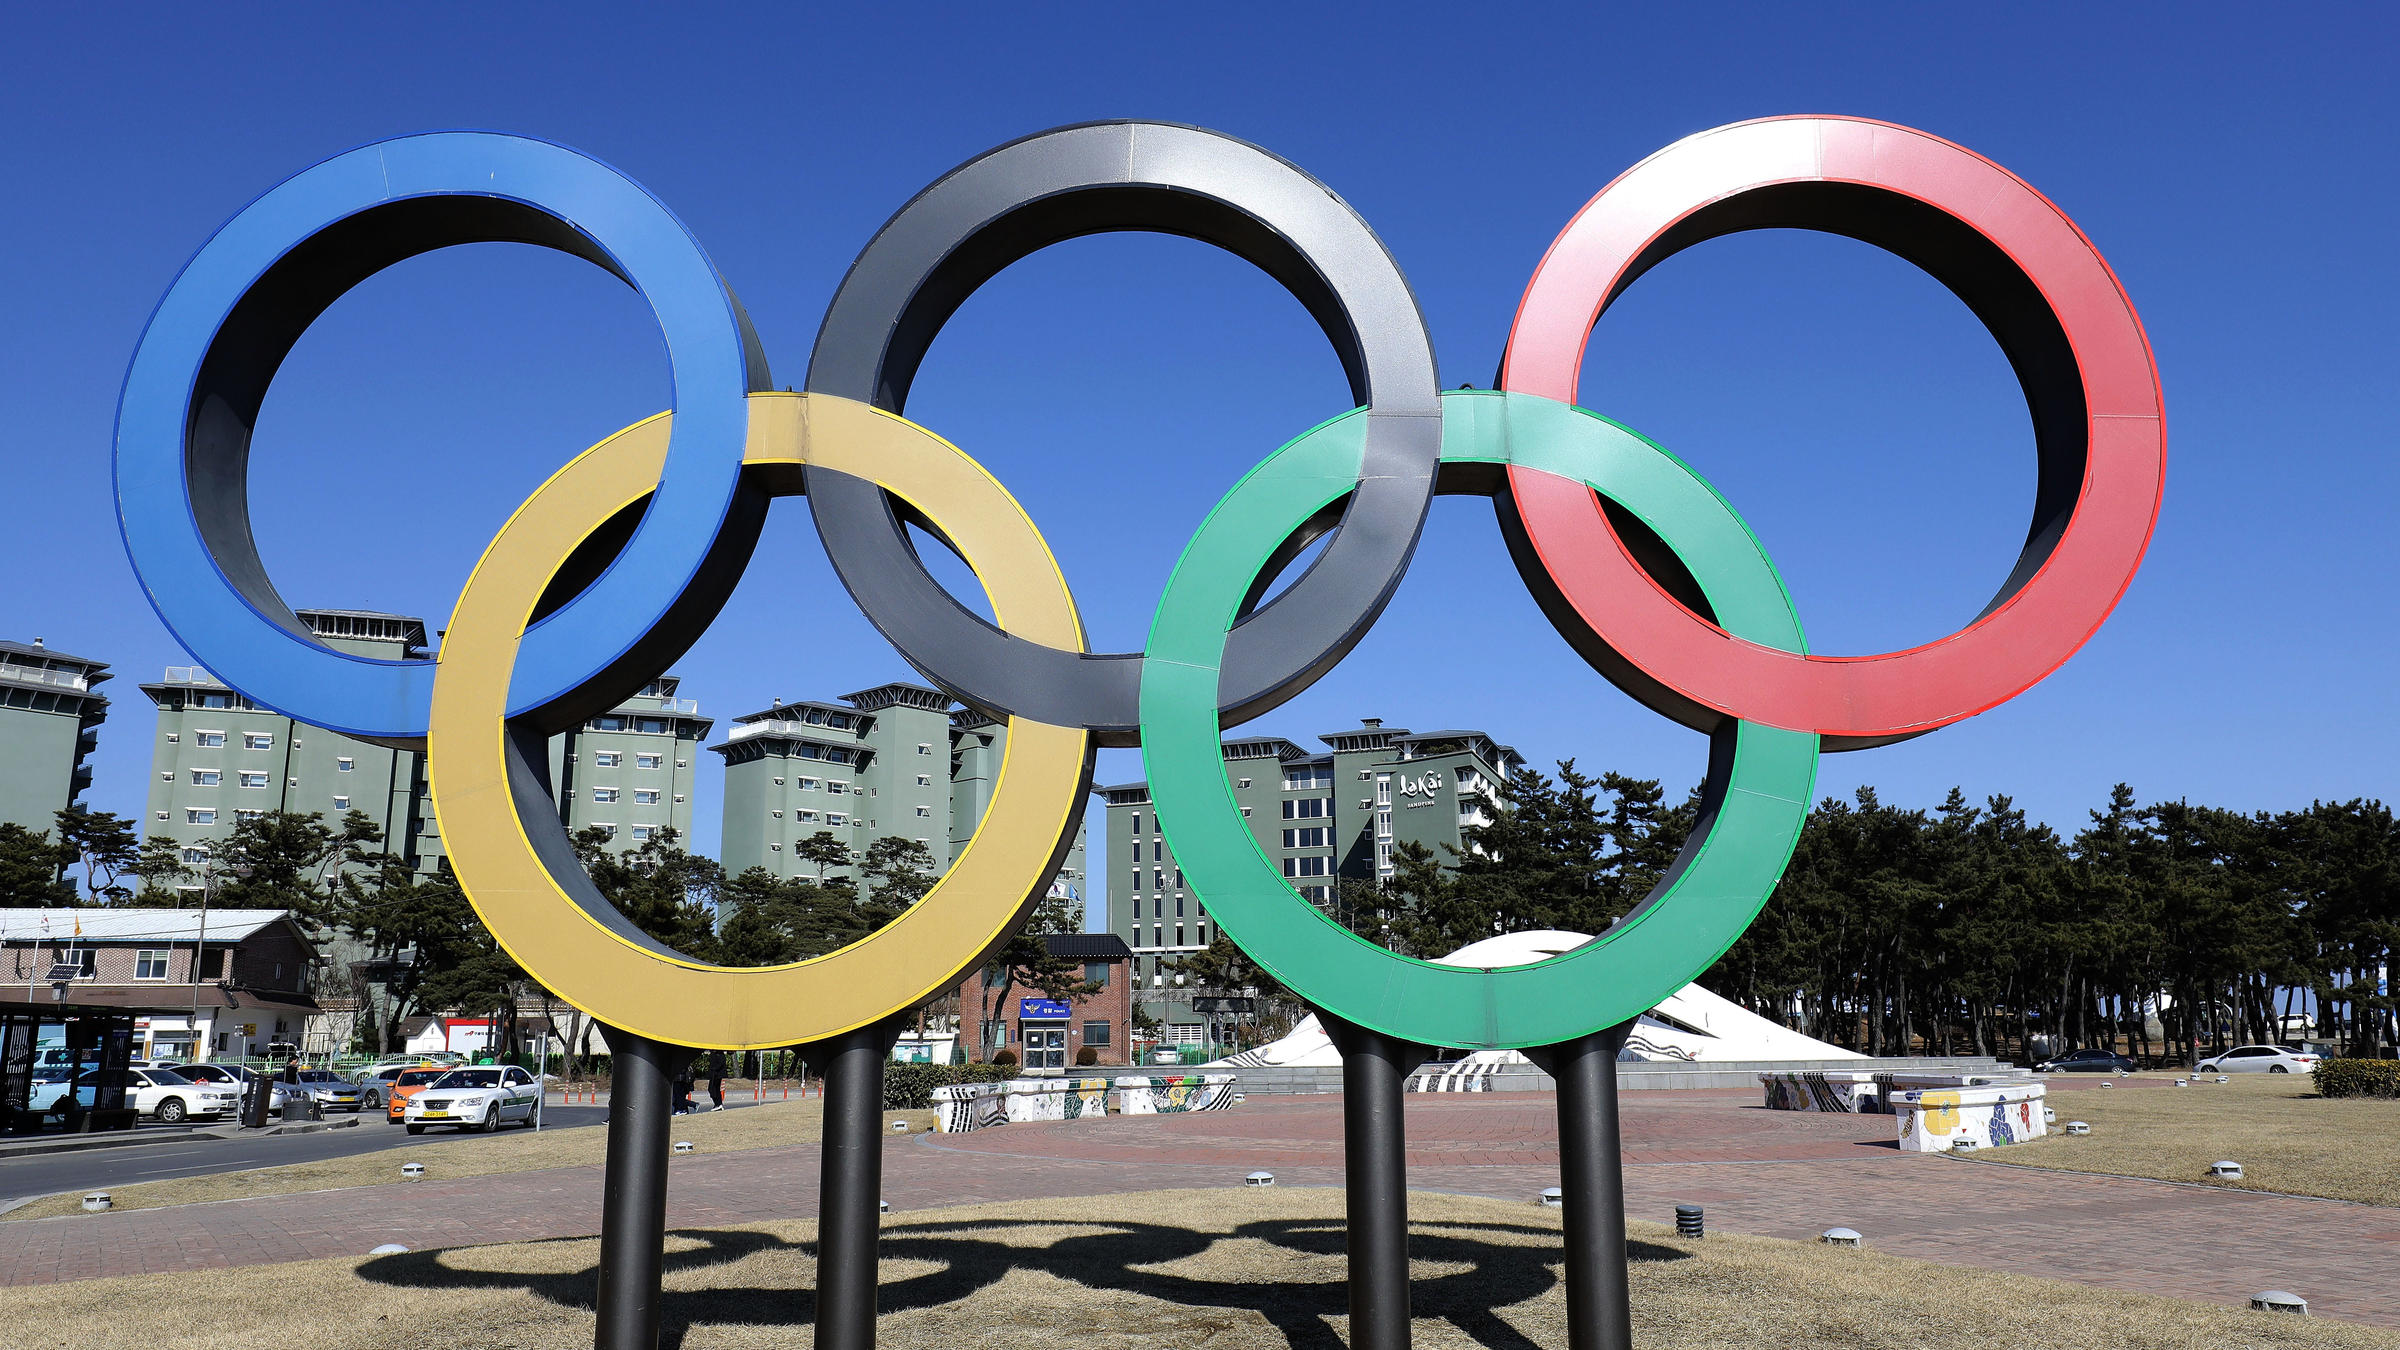 Nhl announces it wont play nice with 2018 winter olympics knkx the olympic rings symbol is seen in gangneung near the venue for the ice hockey events as preparations continue for the pyeongchang 2018 winter olympic biocorpaavc Images